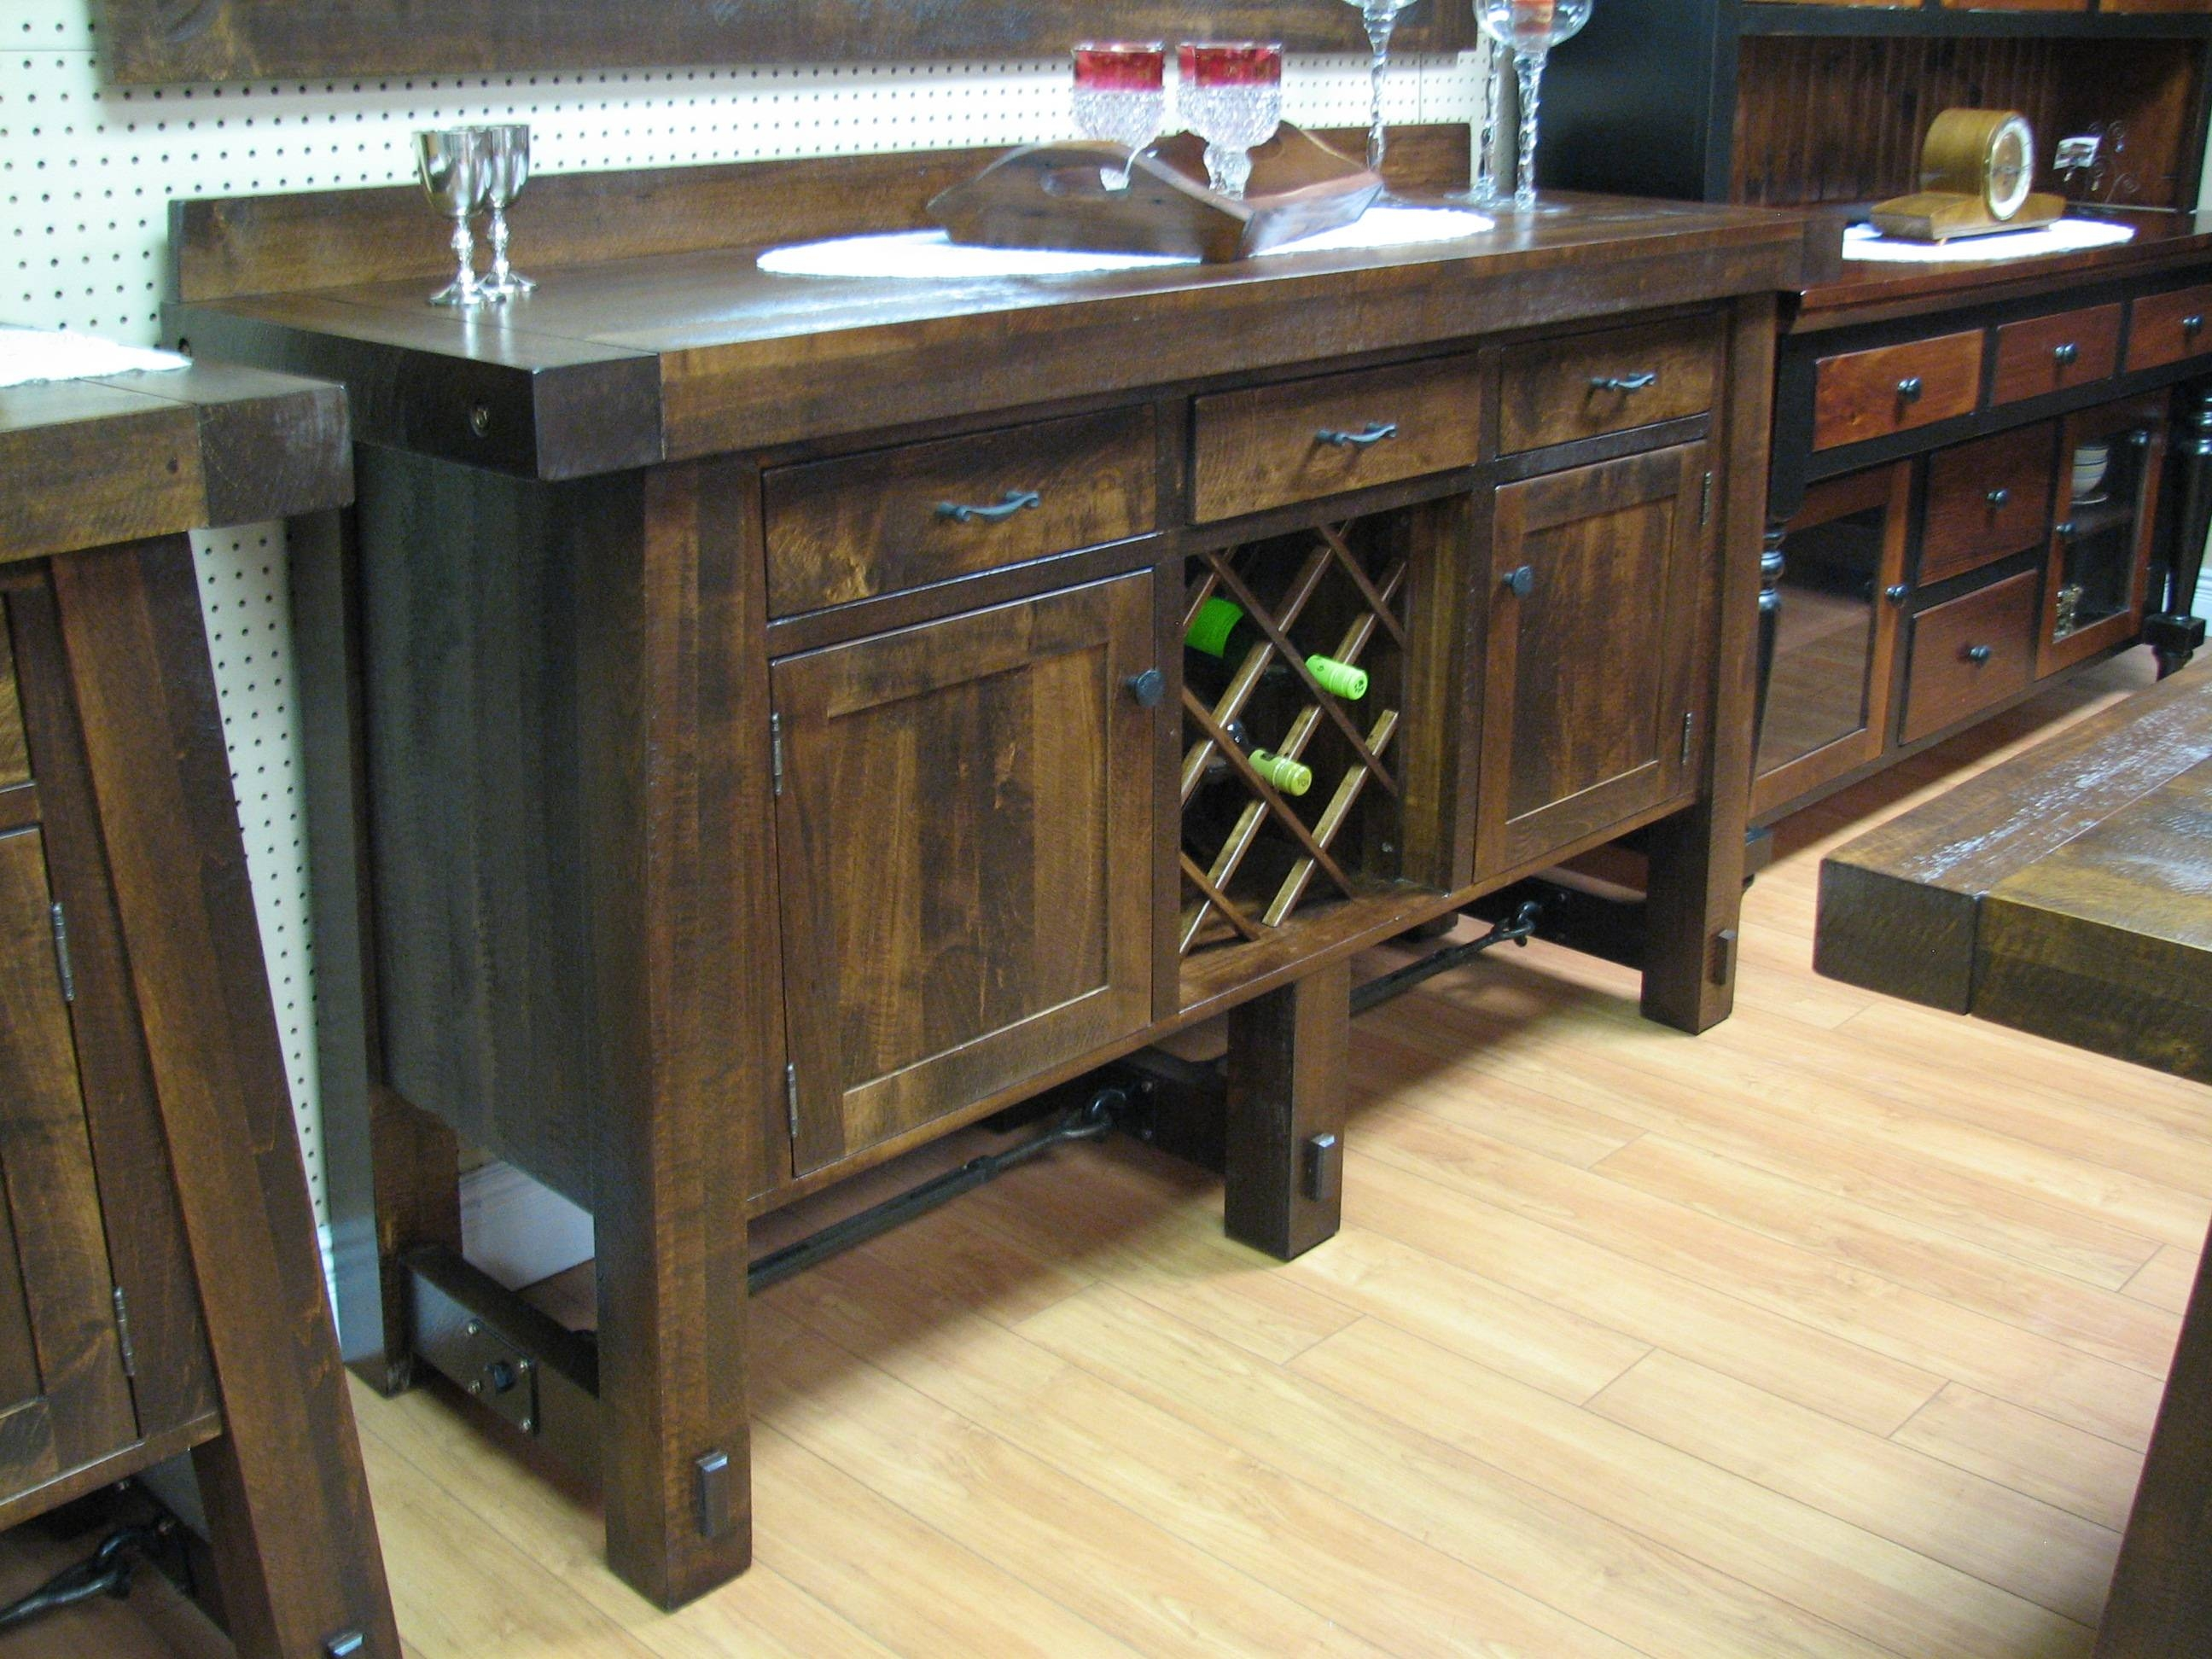 Turnbuckle 70 Inch Sideboard With Wine Rack, Hart's Country for Sideboards With Wine Racks (Image 30 of 30)